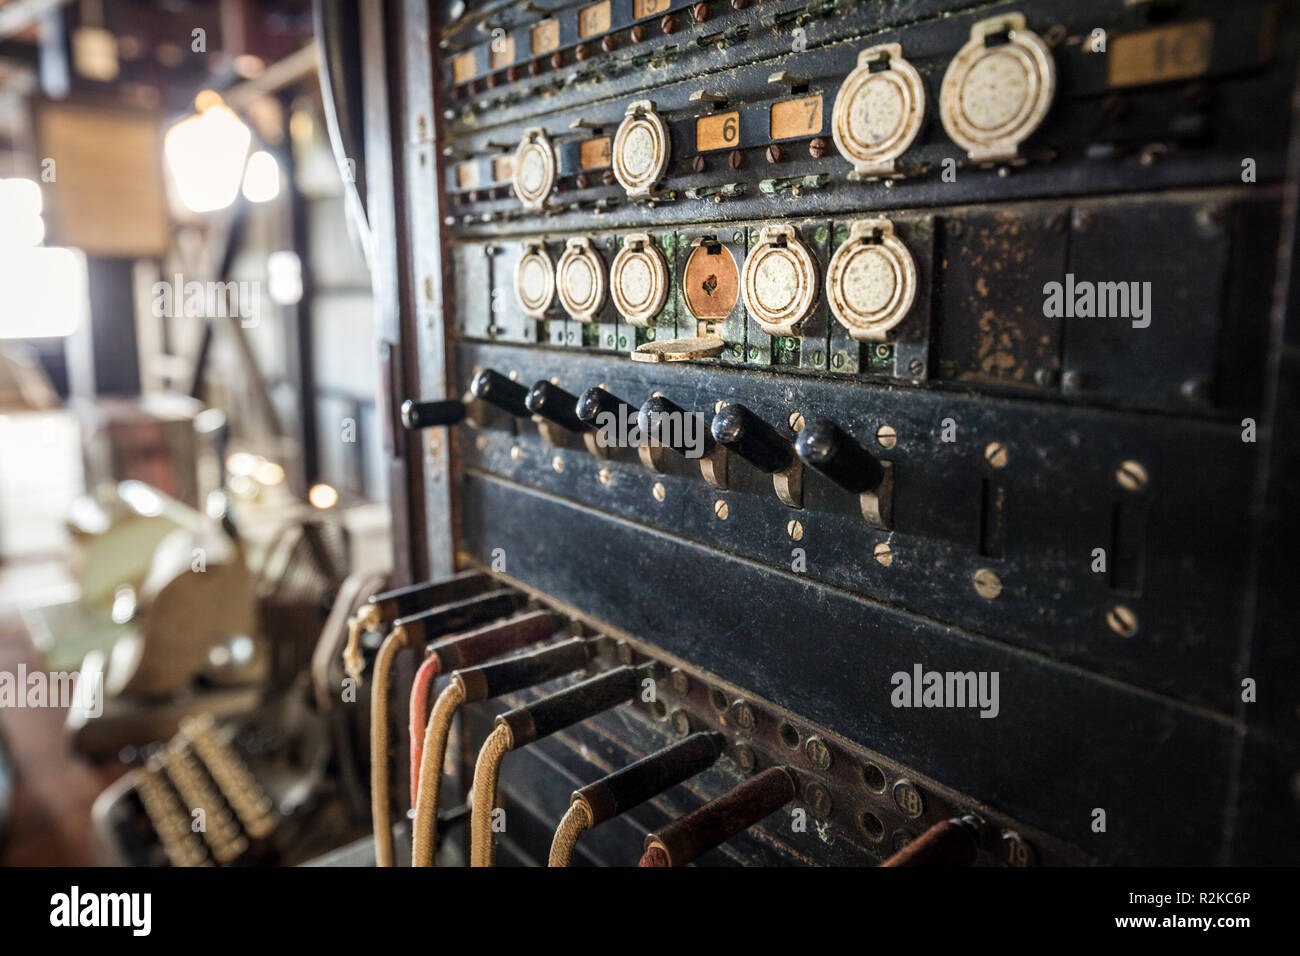 An antique switchboard at the Finca Hamburgo coffee plantation near Tapachula, Chiapas, Mexico. - Stock Image